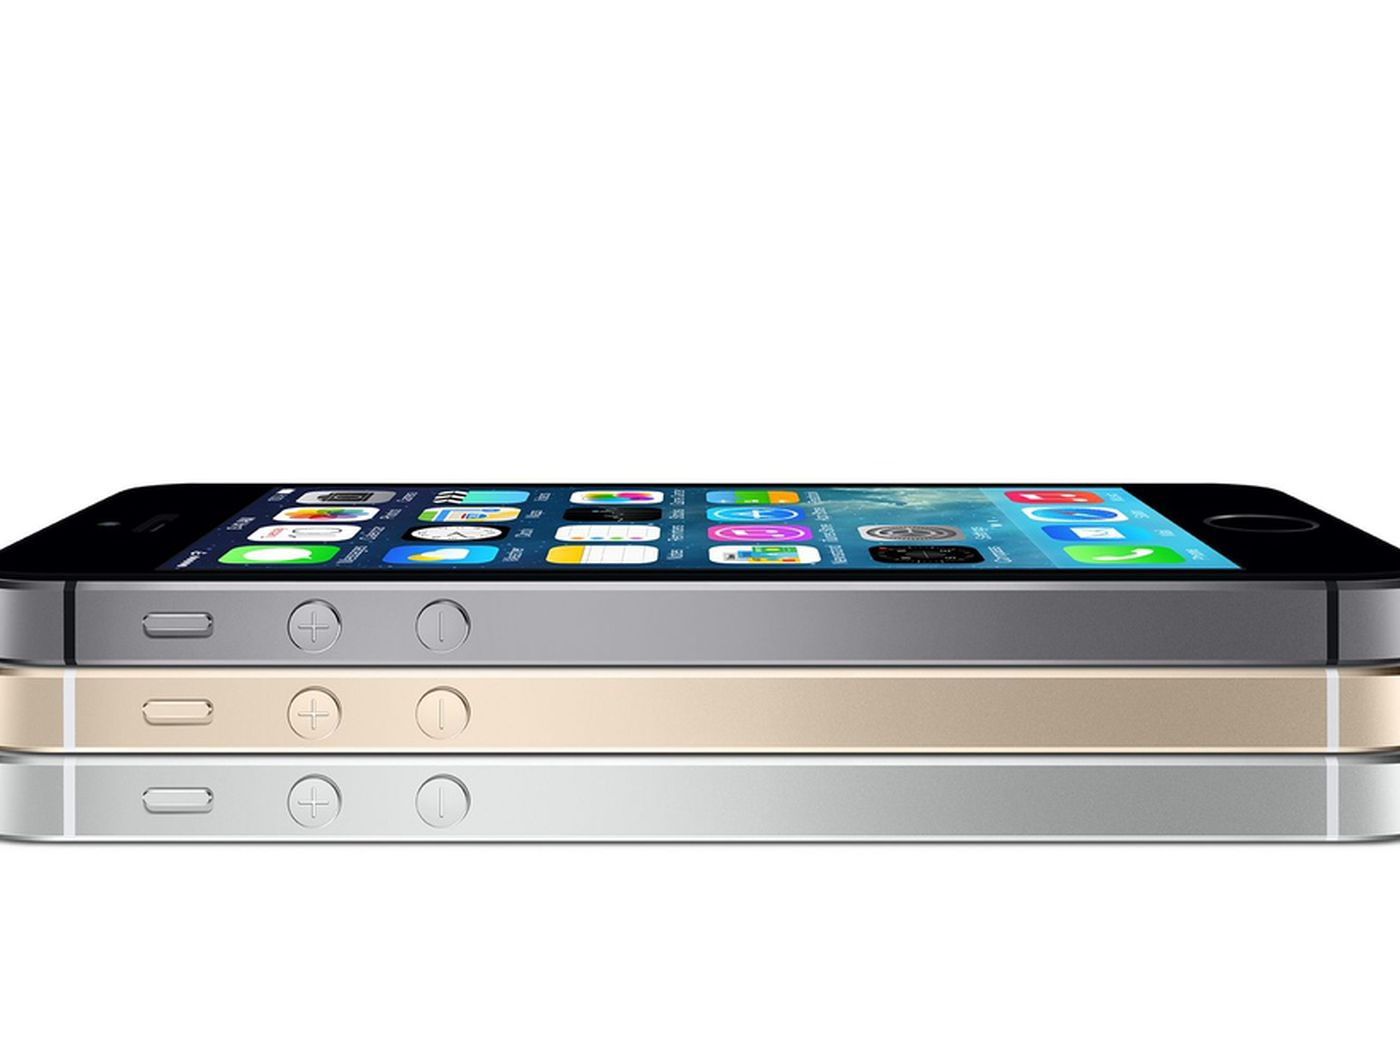 Apple Discontinues The Iphone 5s Verge 32 Gb 1 Years Waranty